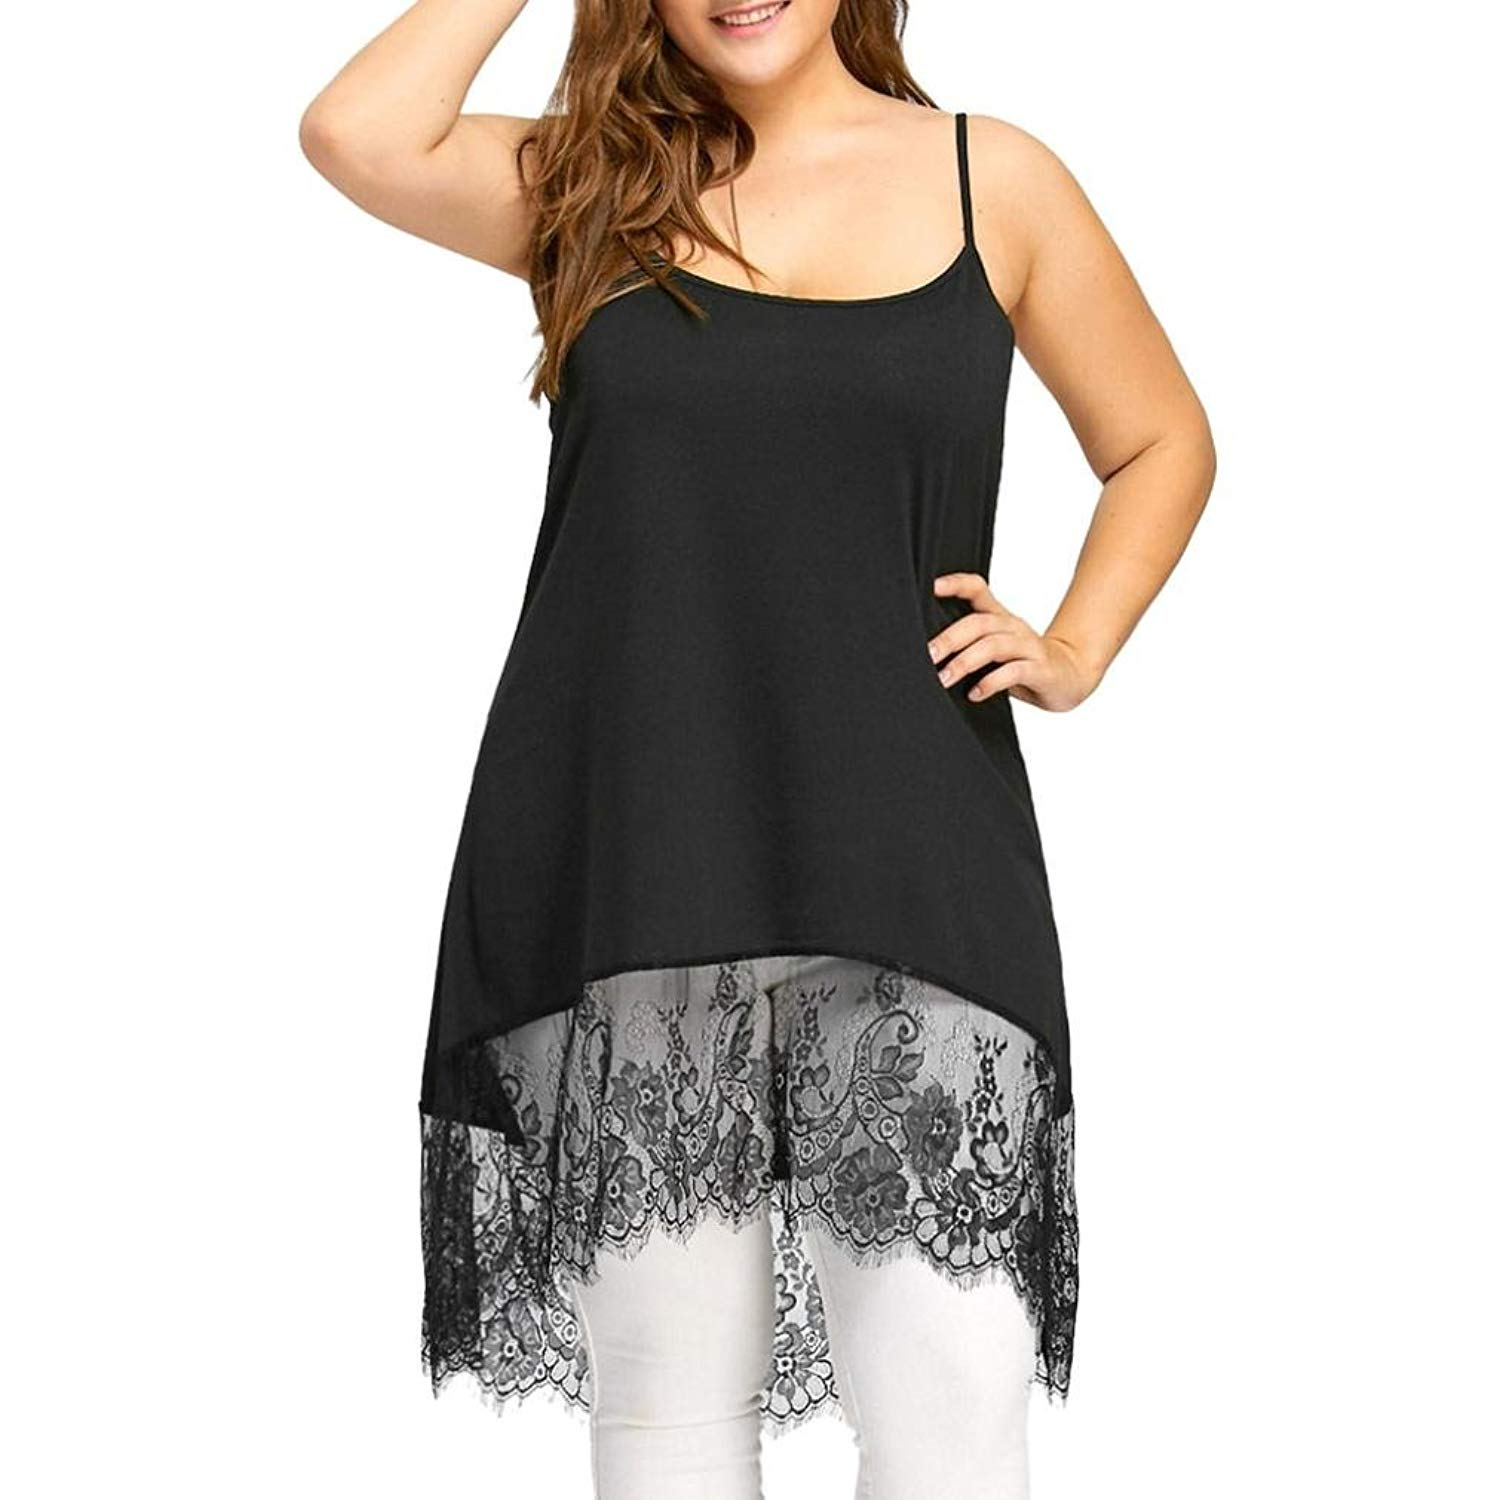 Ninasill Clearance ! Women Blouse, Hot Sexy Plus Size High Low Lace Camisole Tank Tops Long Vest